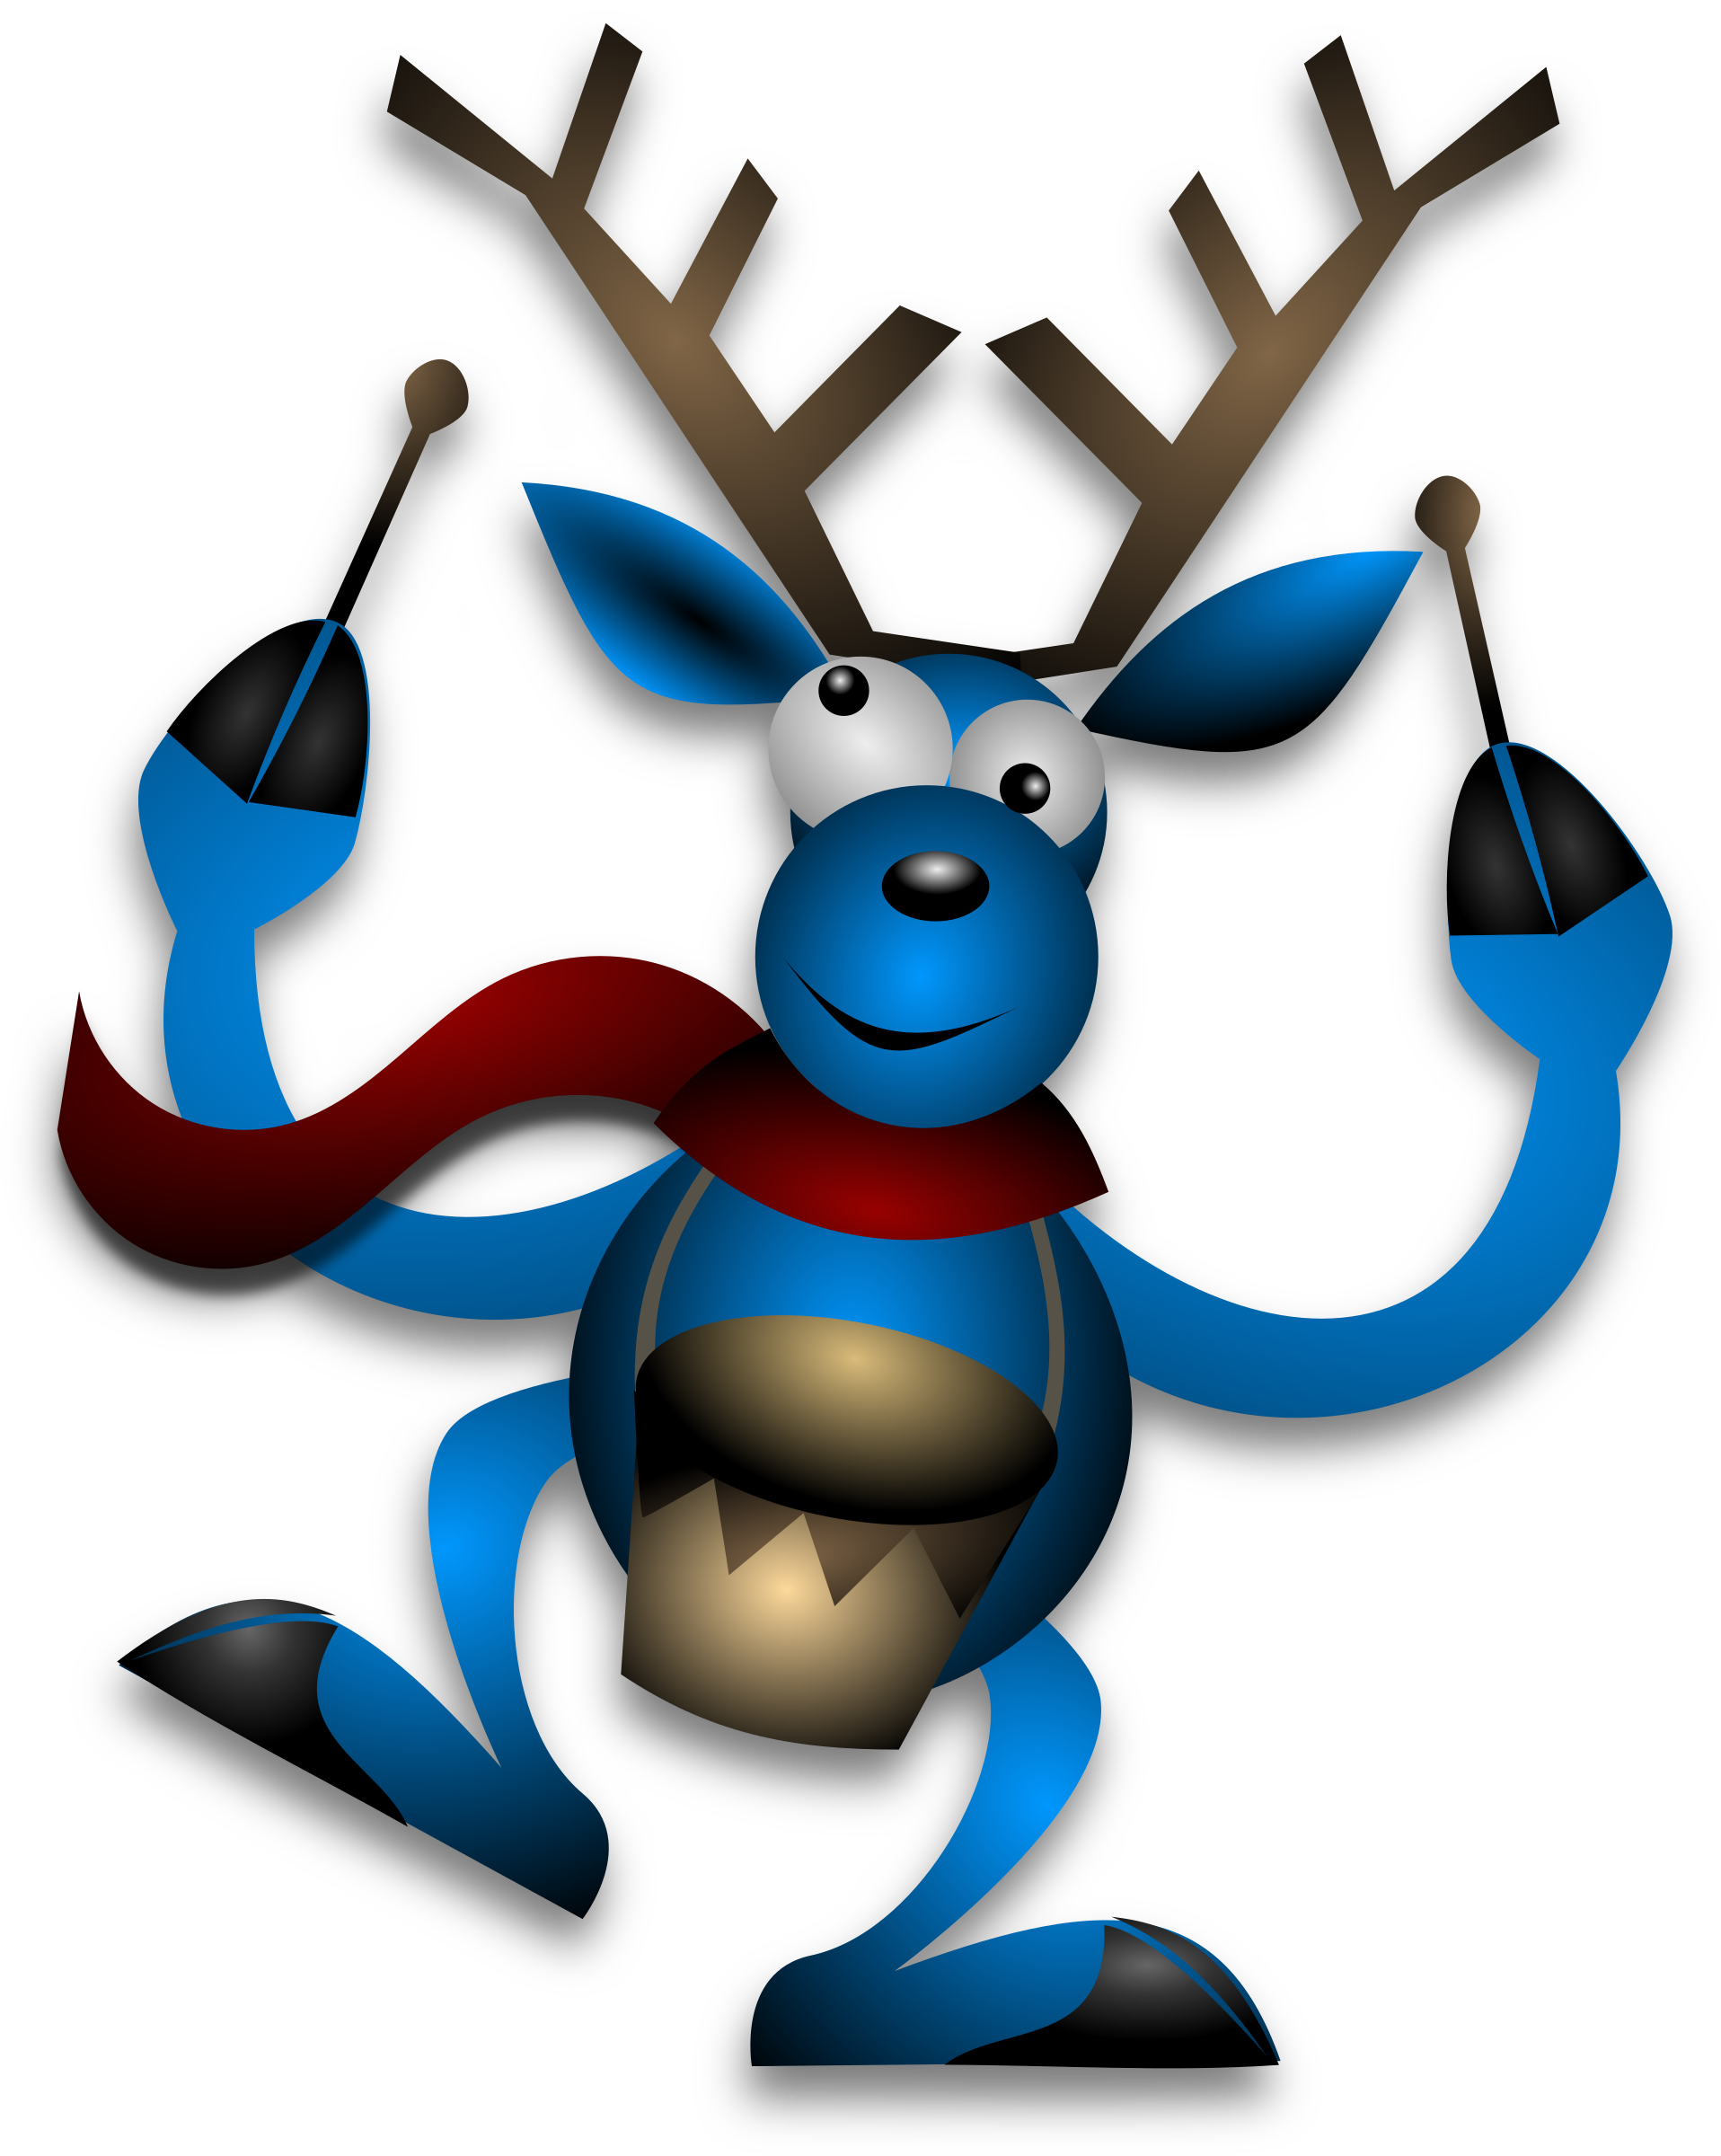 Dancing Reindeer 2 by Merlin2525